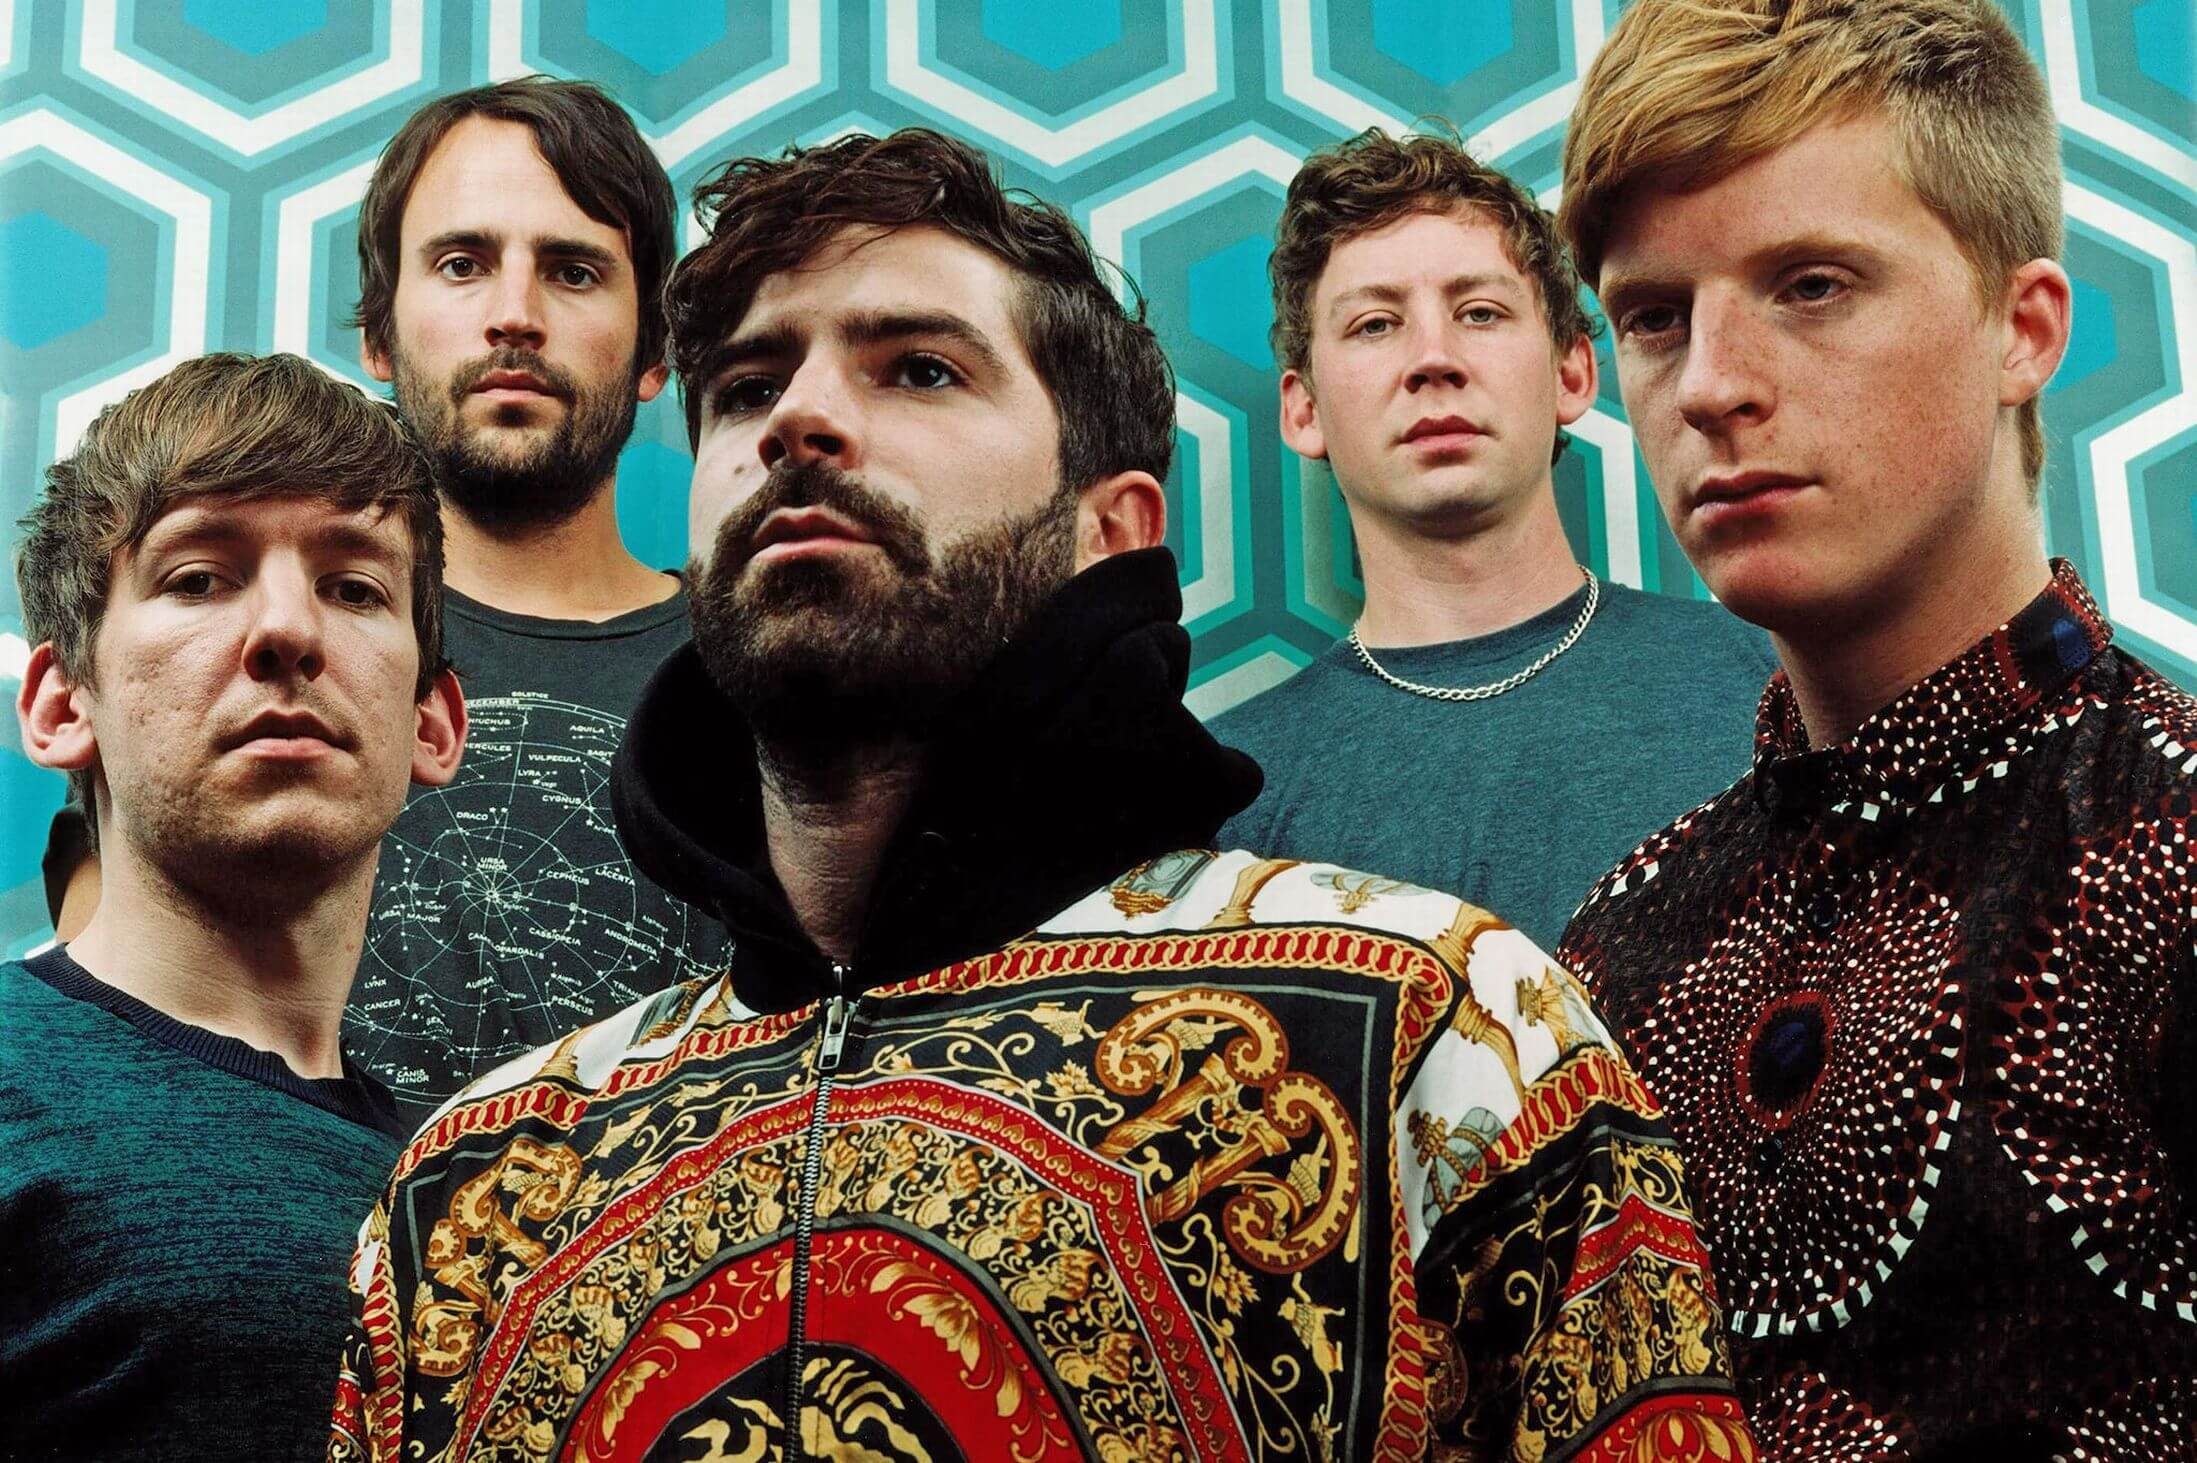 Foals - Did You Know?